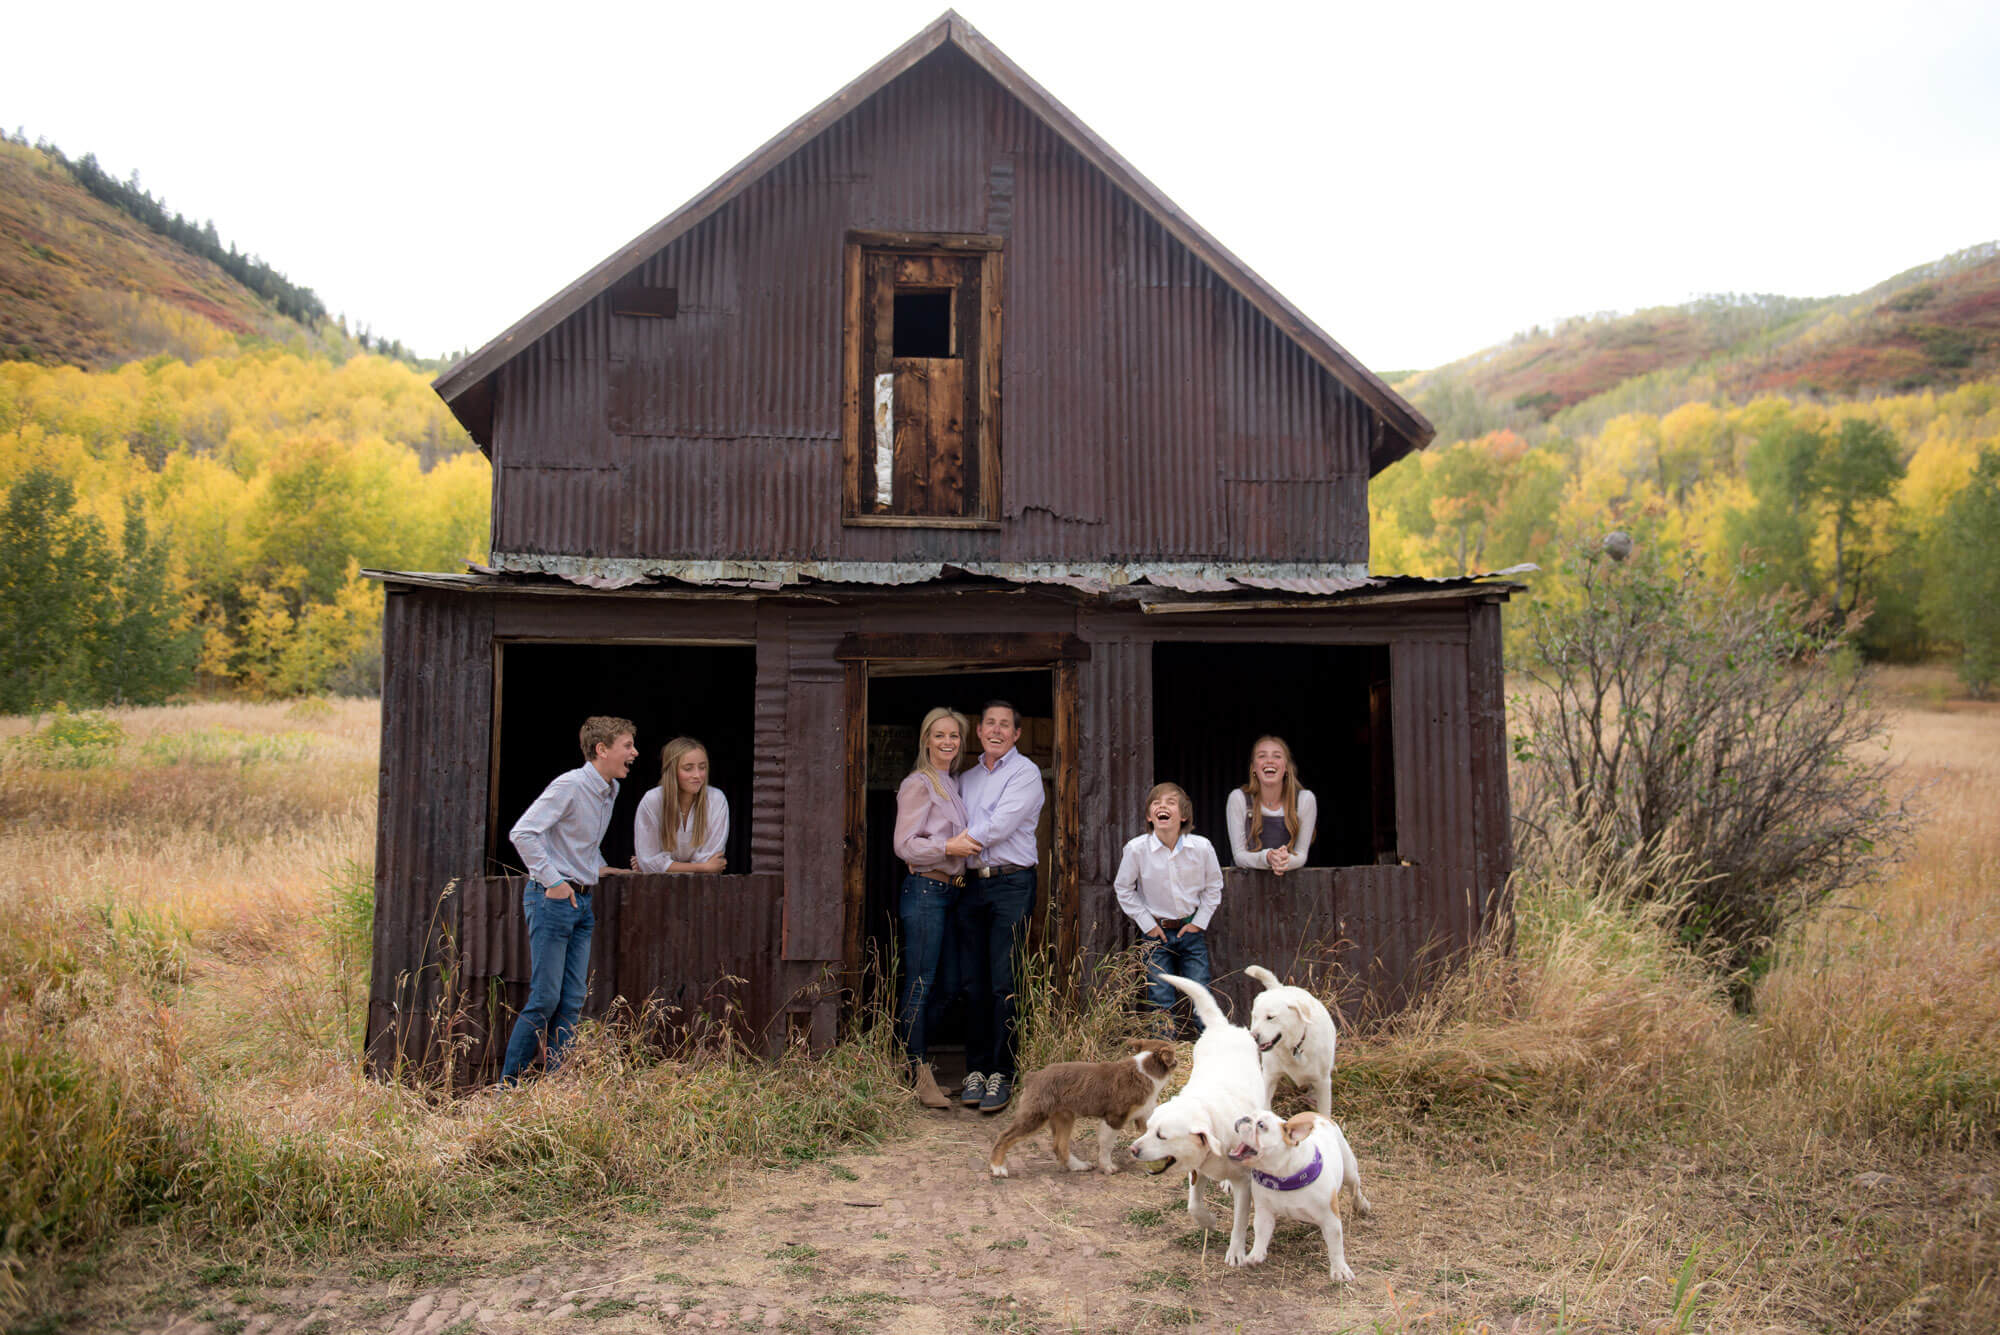 Family portrait including pets at an old vacant cabin